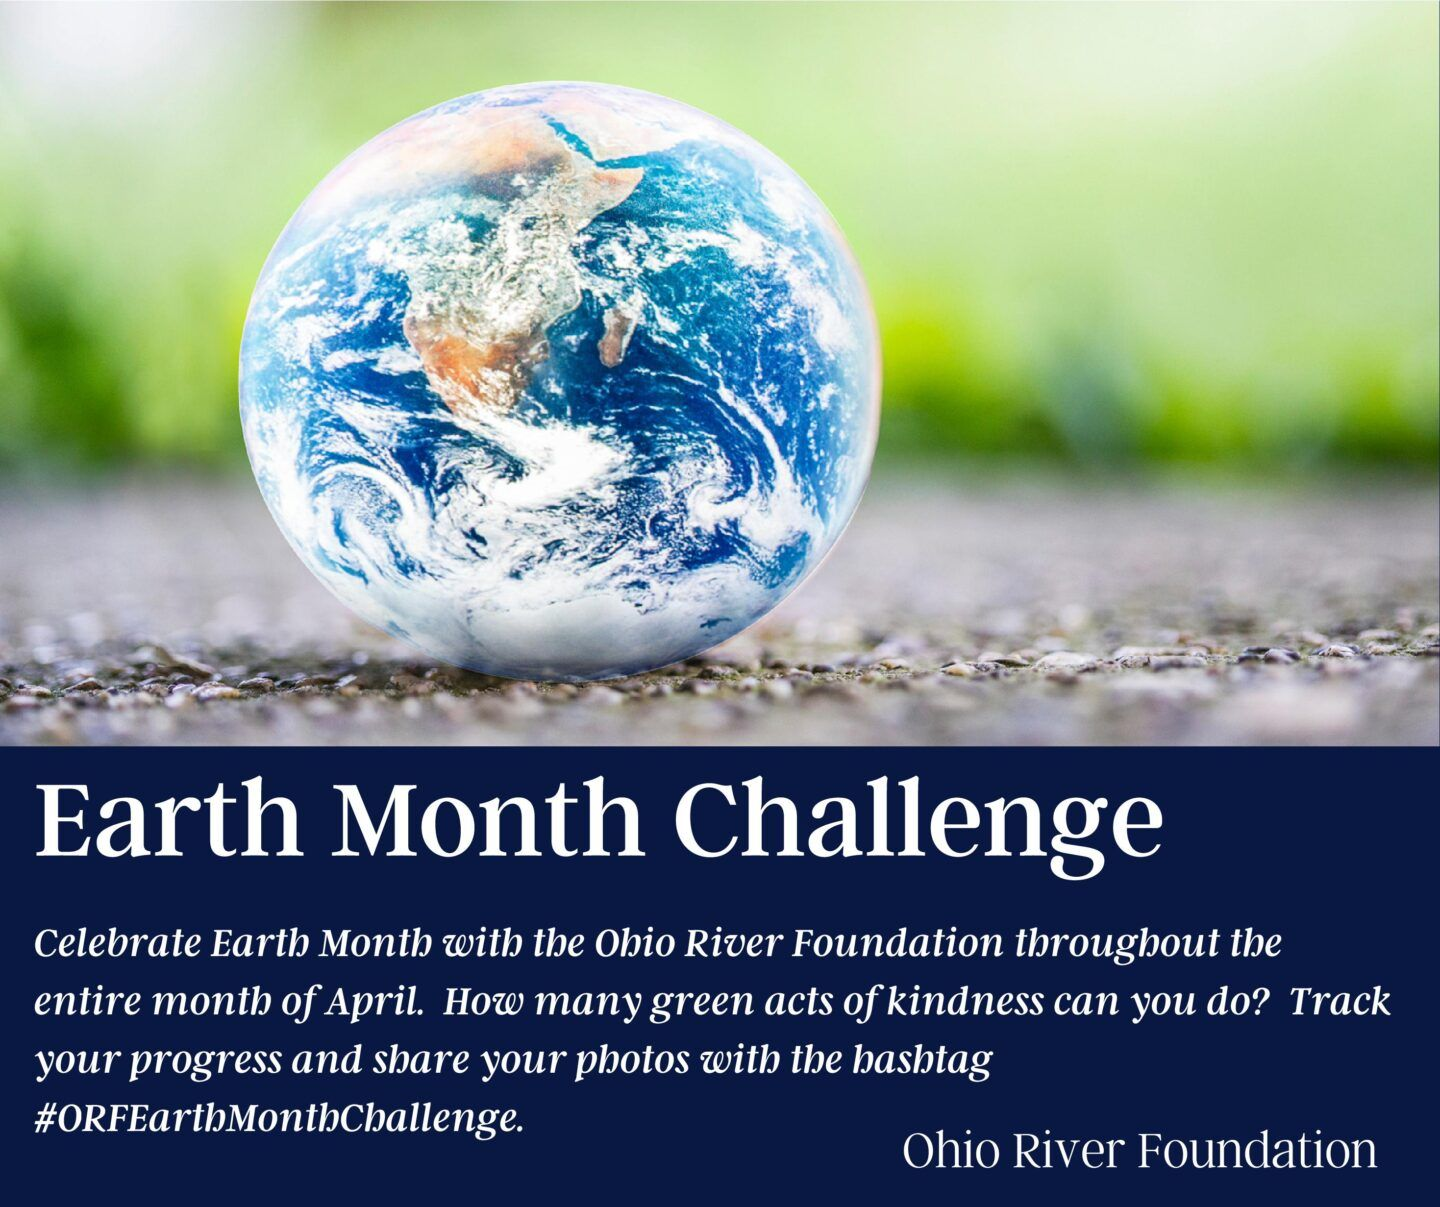 Ohio River Foundation launches Earth Month Challenge